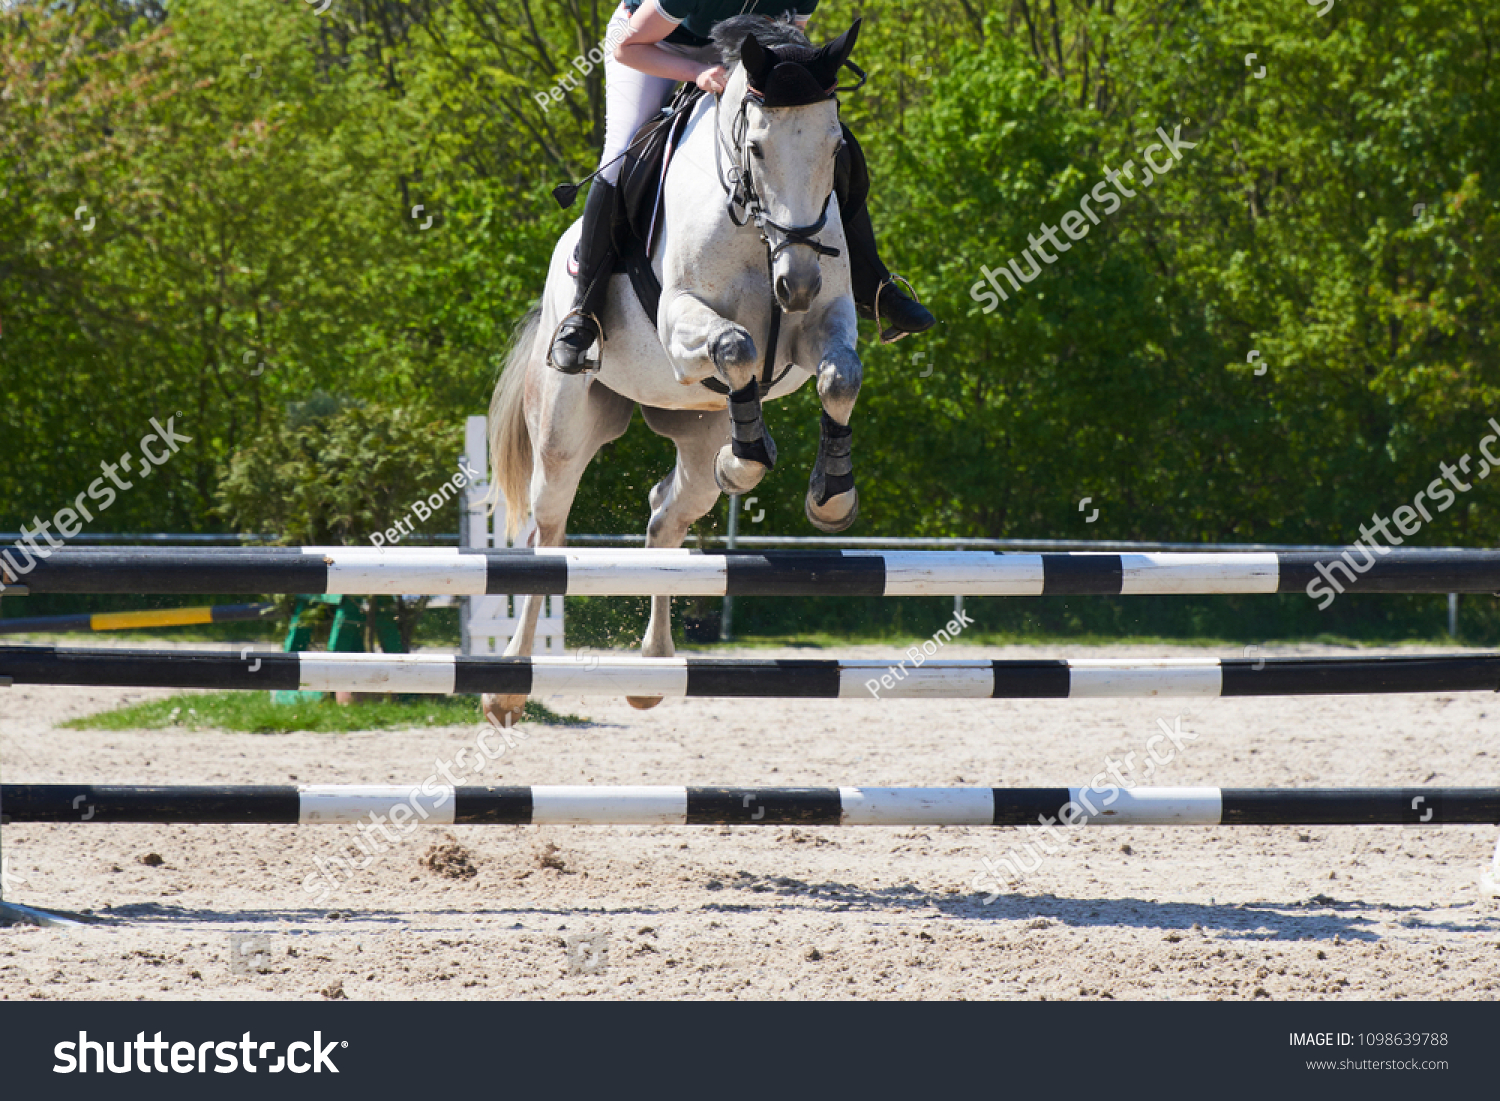 Equestrian Sports Horse Jumping Show Jumping Stock Photo Edit Now 1098639788